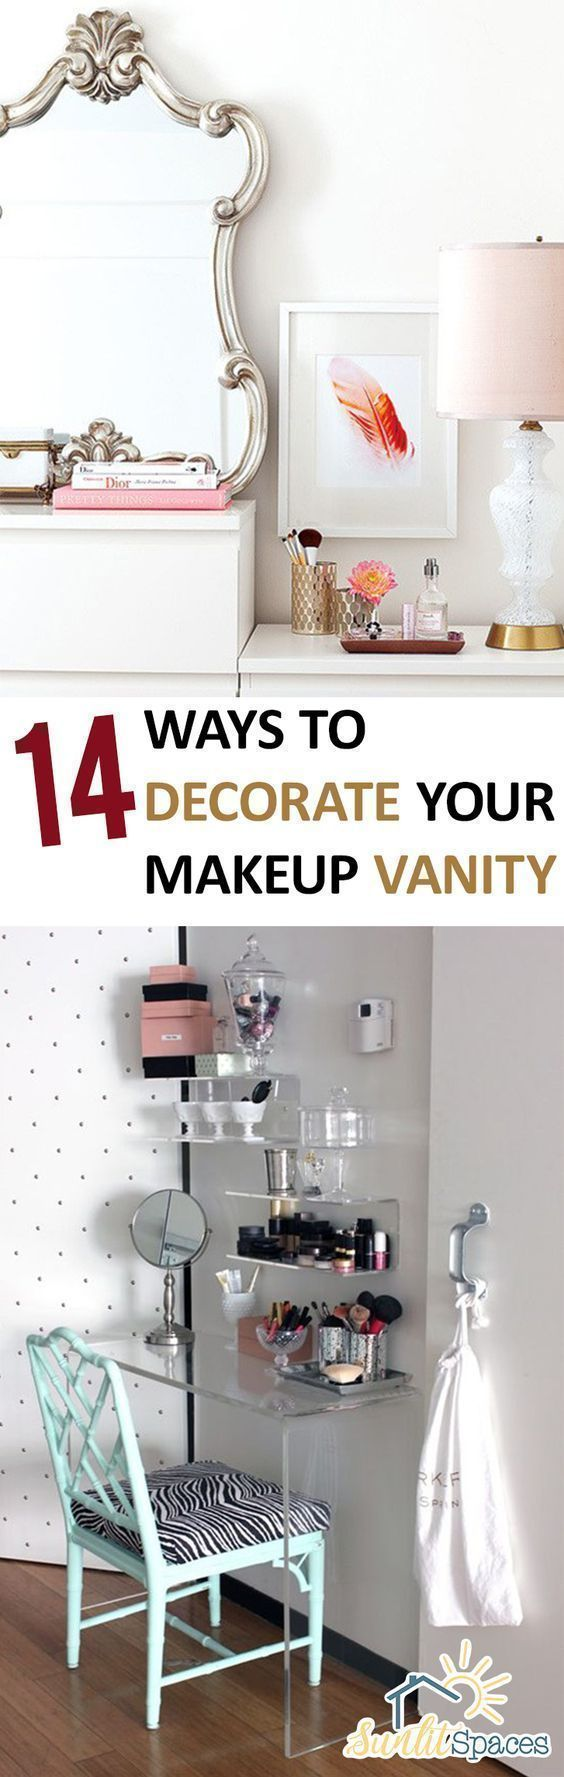 Makeup Vanity How To Decorate Your Makeup Vanity Home Decor Ideas DIY Makeup  Vanity Makeup Vanity